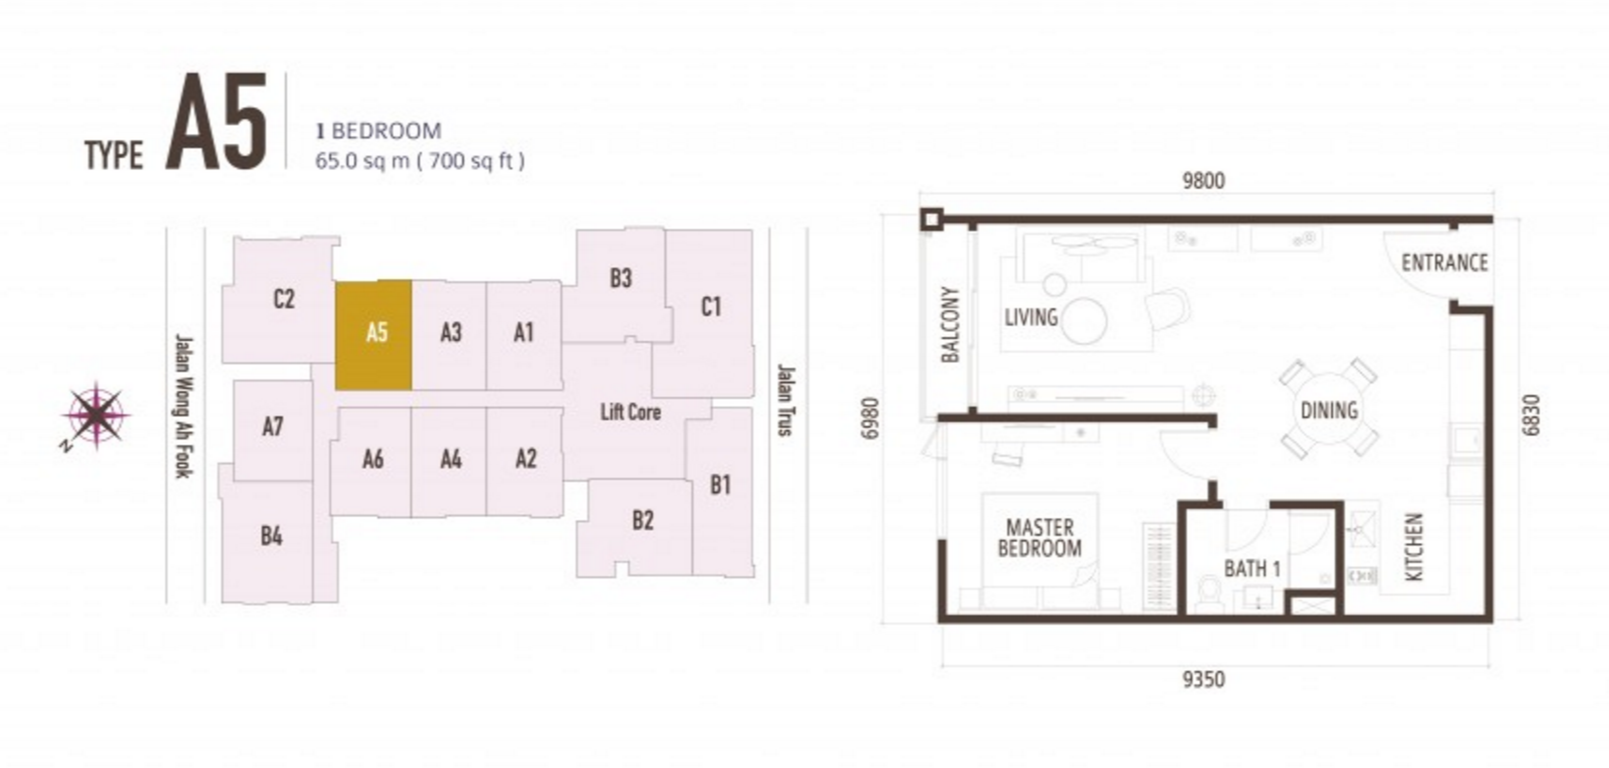 FloorPlan 1 Bedroom Type A5